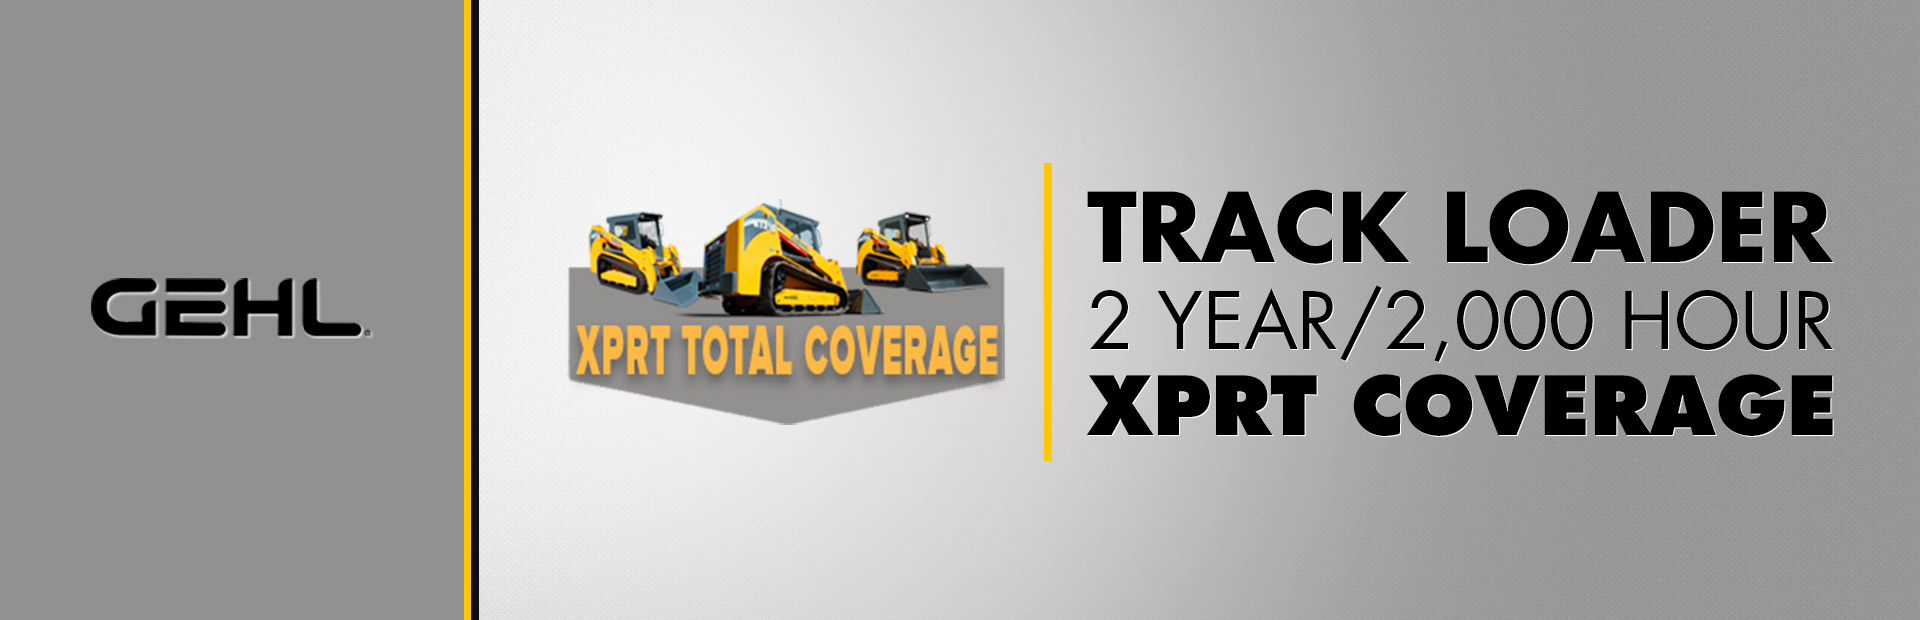 Gehl: Track Loader - 2 Year / 2,000 Hour XPRT Coverage